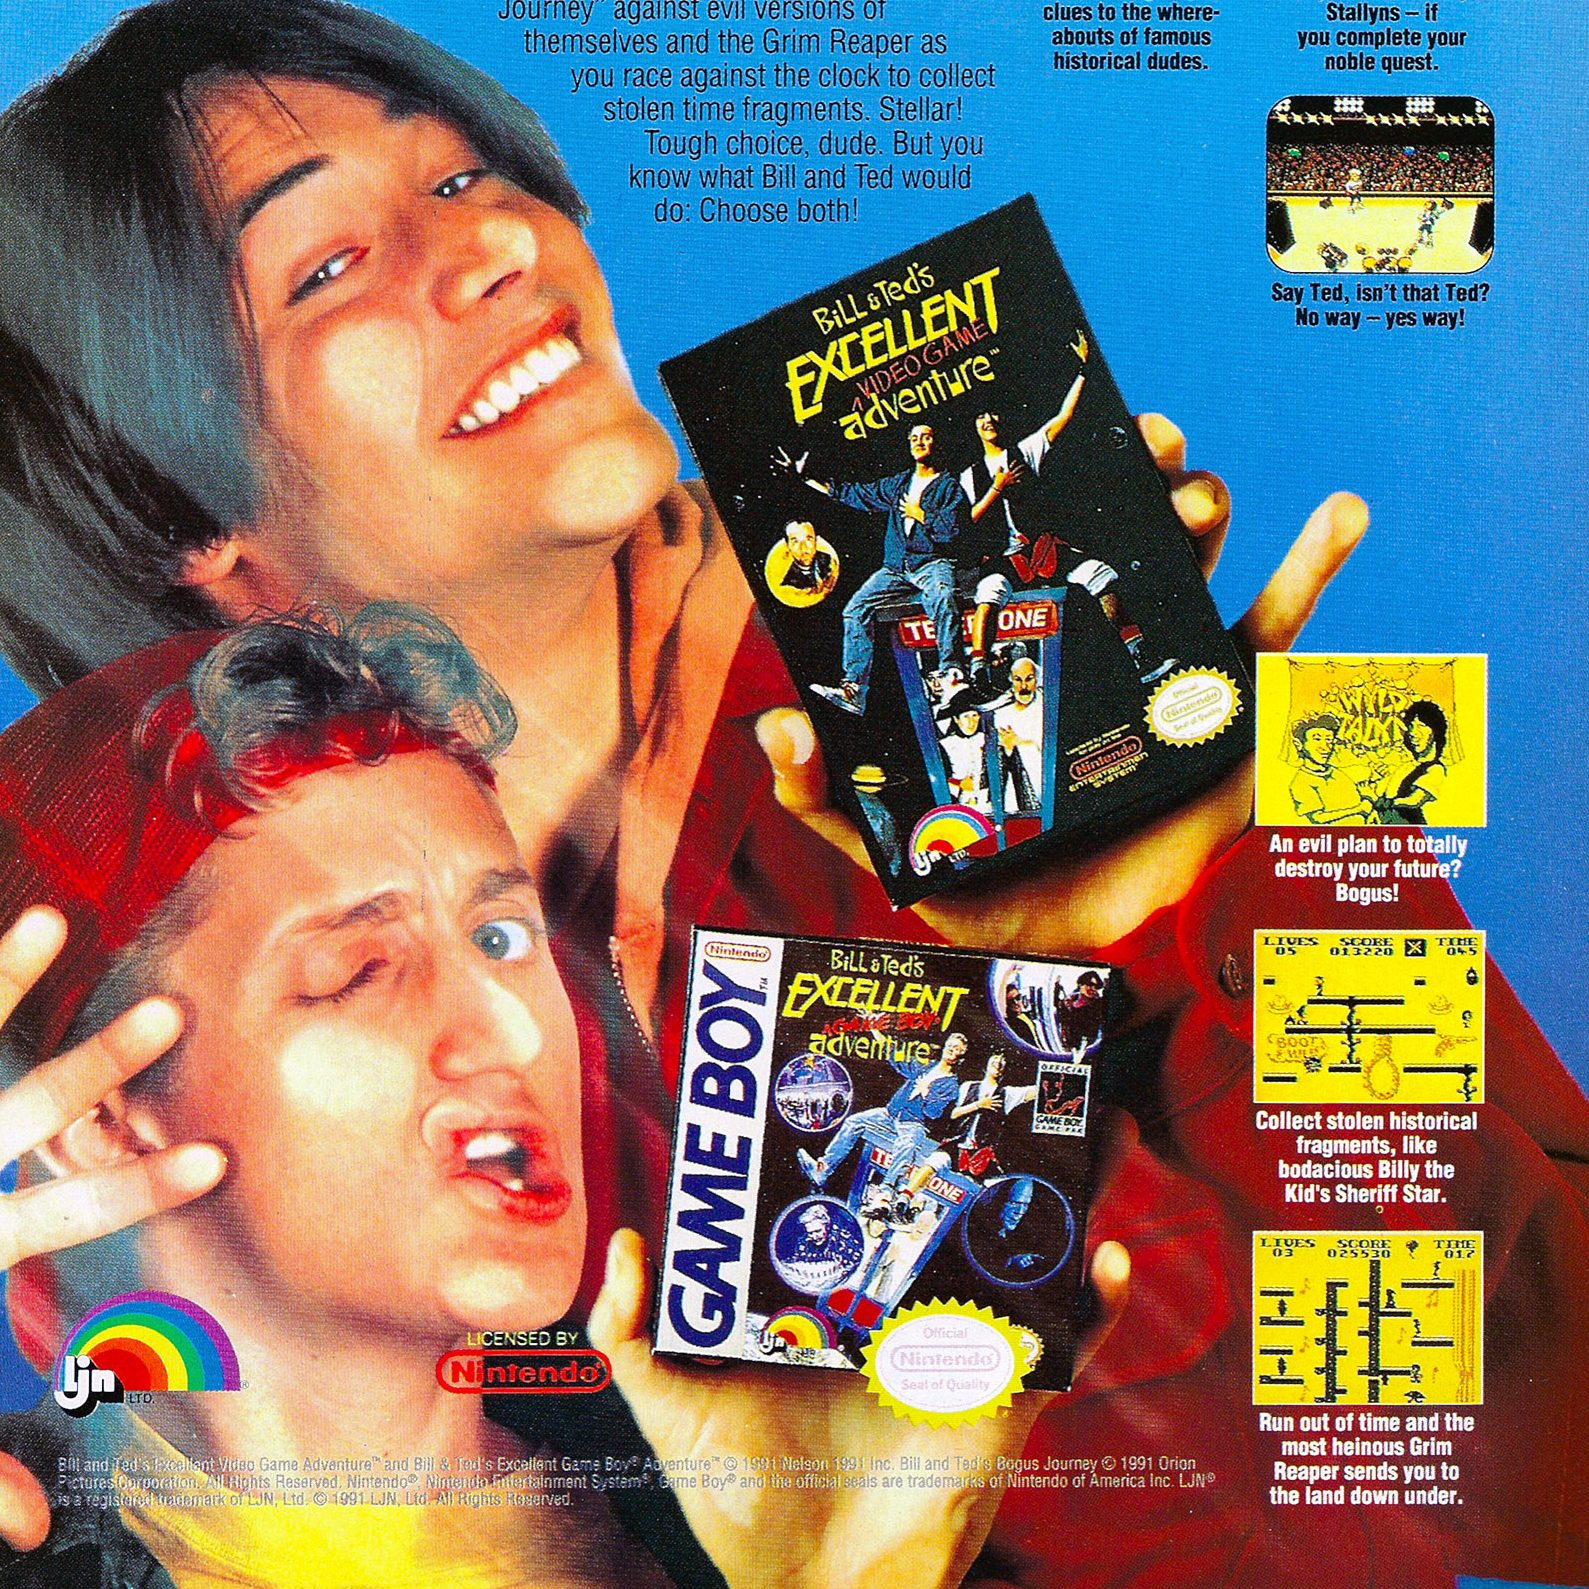 Bill and Teds Excellent Video Game Adventure and Game Boy Adventure e1599642334494 25 Totally Non-Heinous Facts About Bill & Ted's Excellent Adventure!